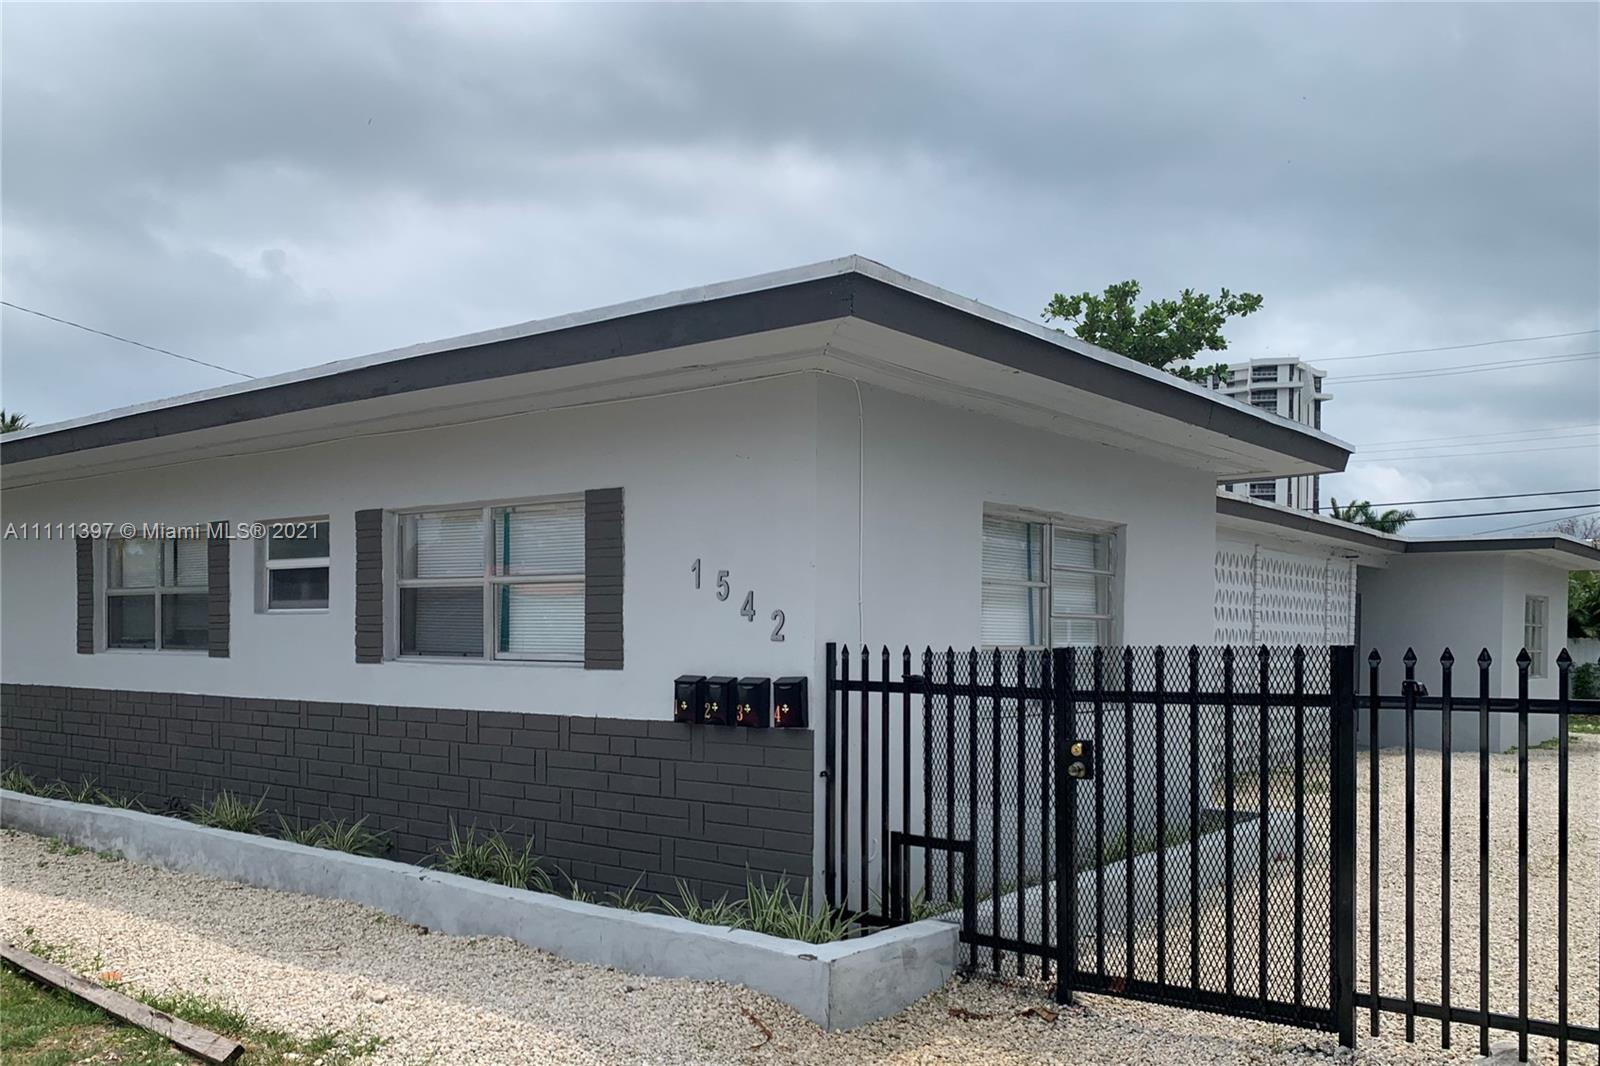 1542 NE 109th St, Miami, Florida 33161, ,Residential Income,For Sale,109th St,A11111397